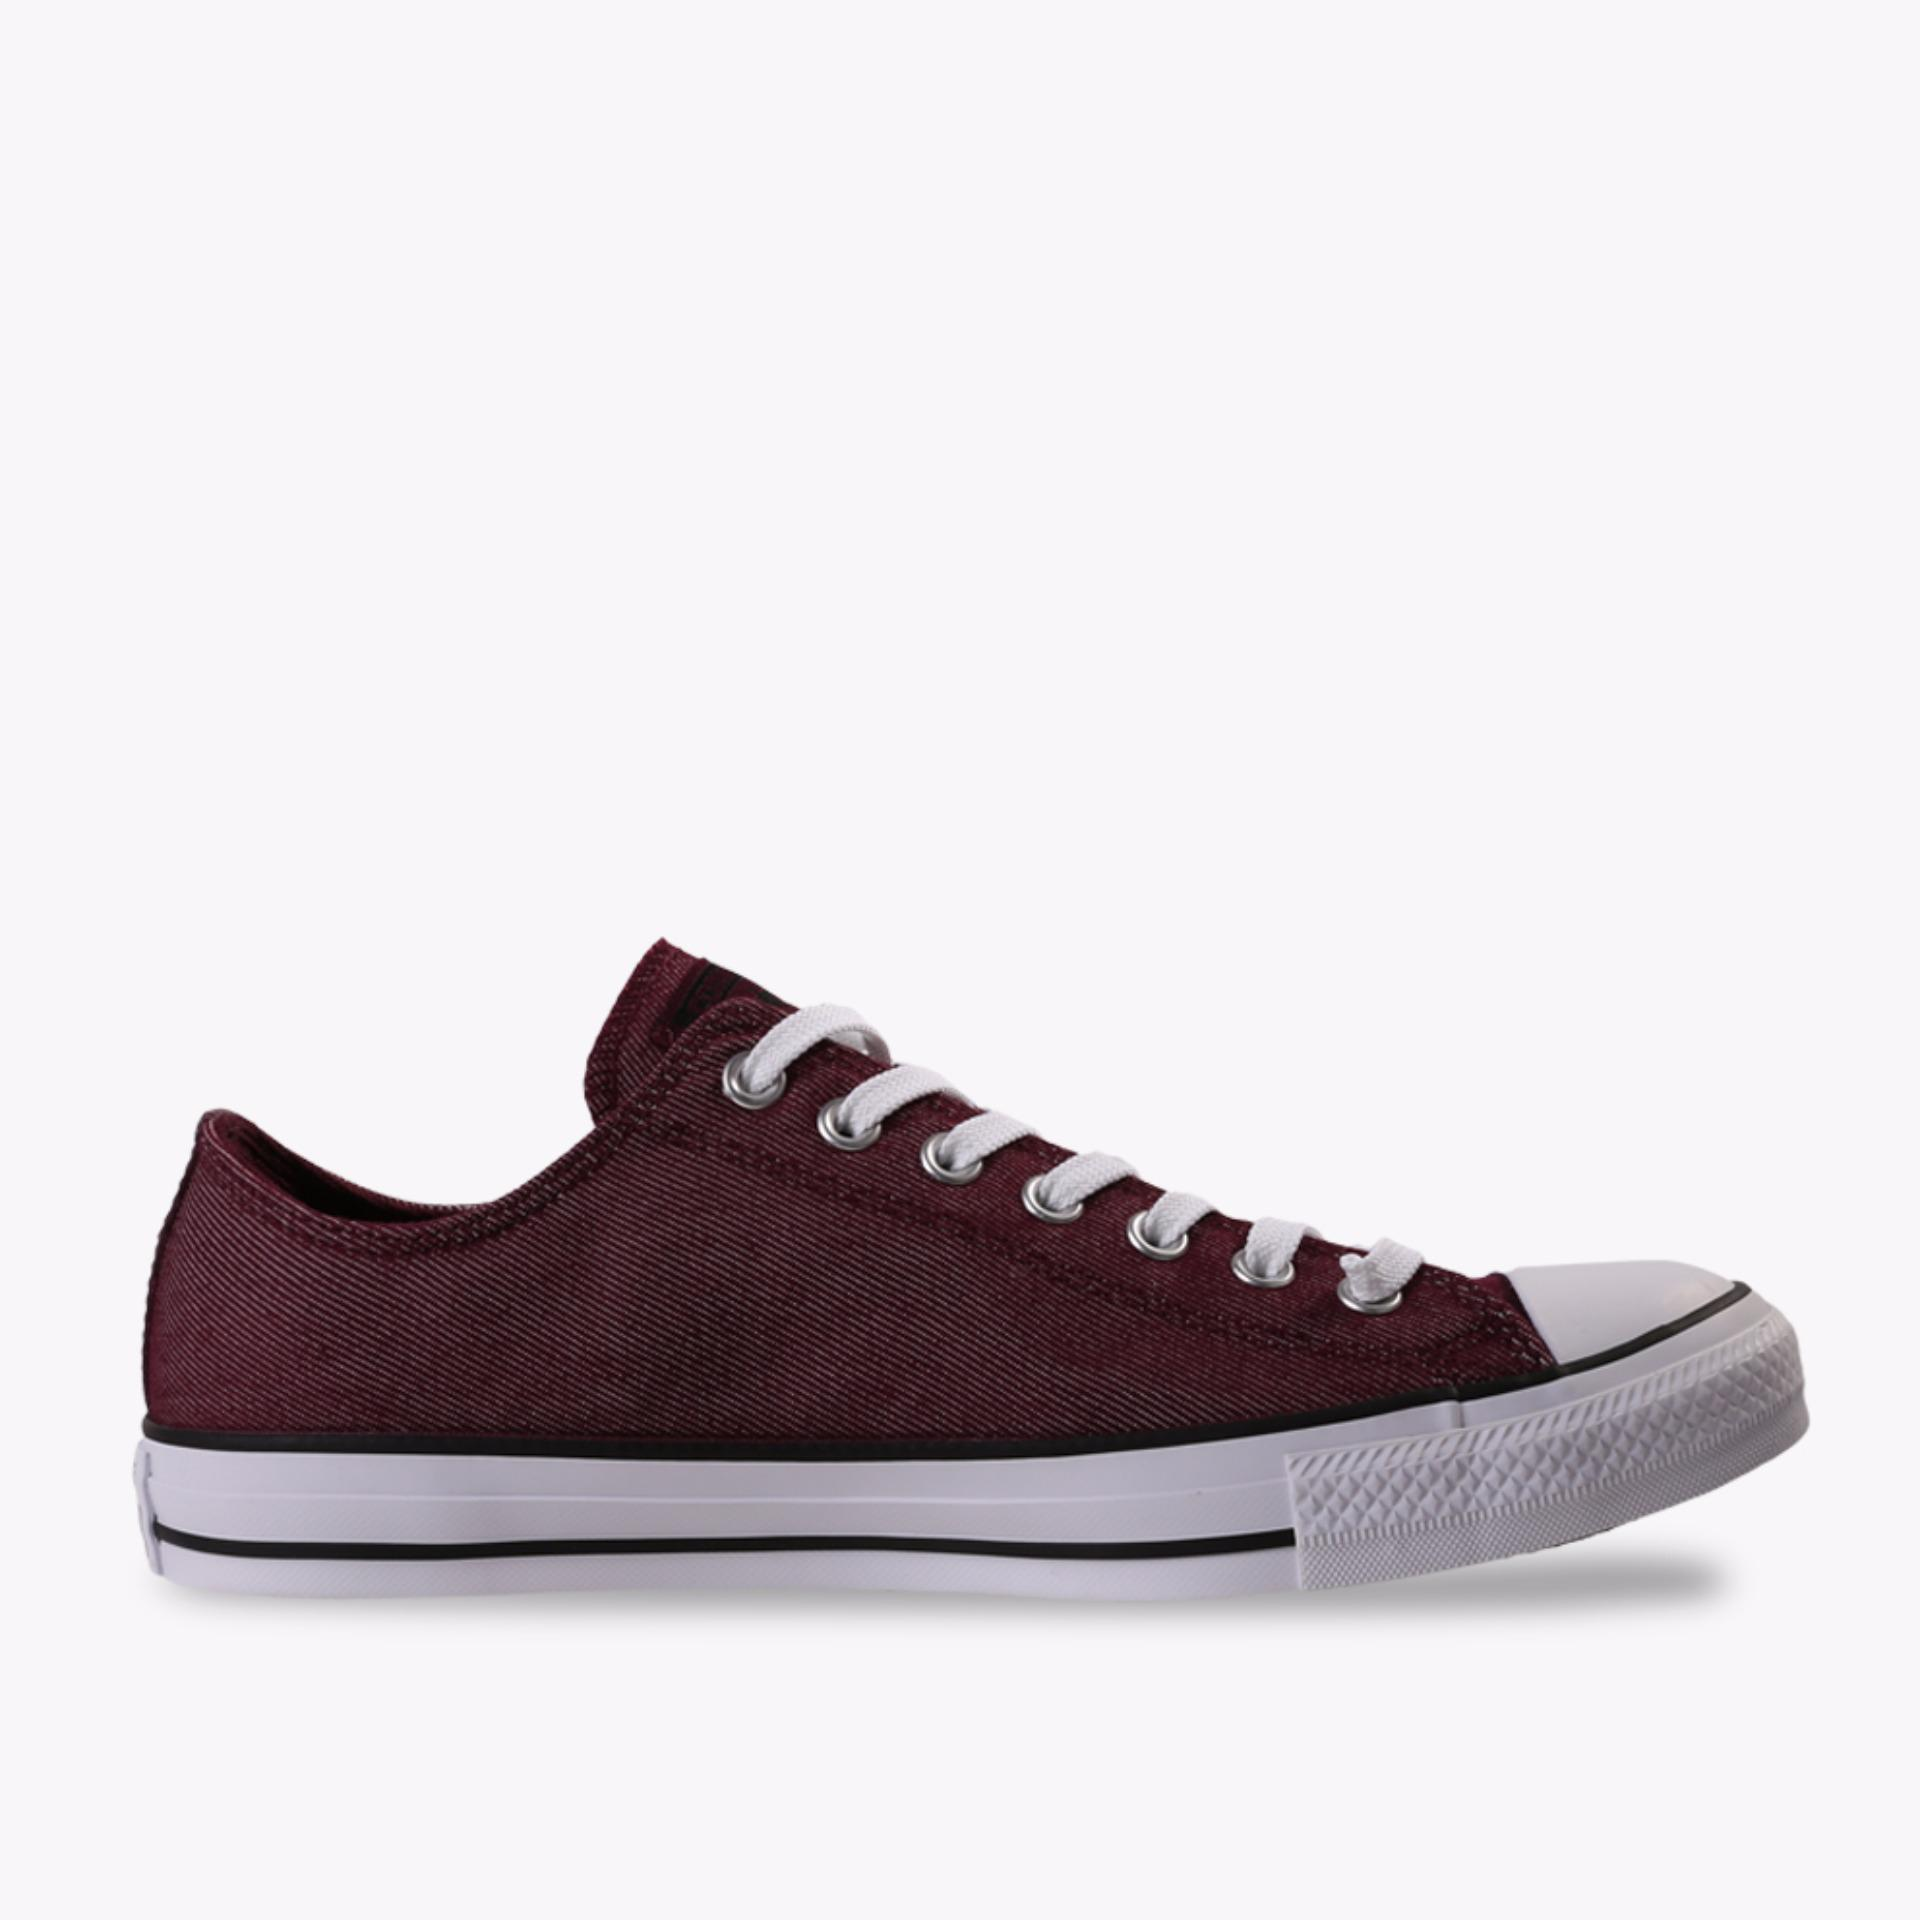 Converse Chuck Taylor All Star Ox Men's Sneakers Shoes - Merah